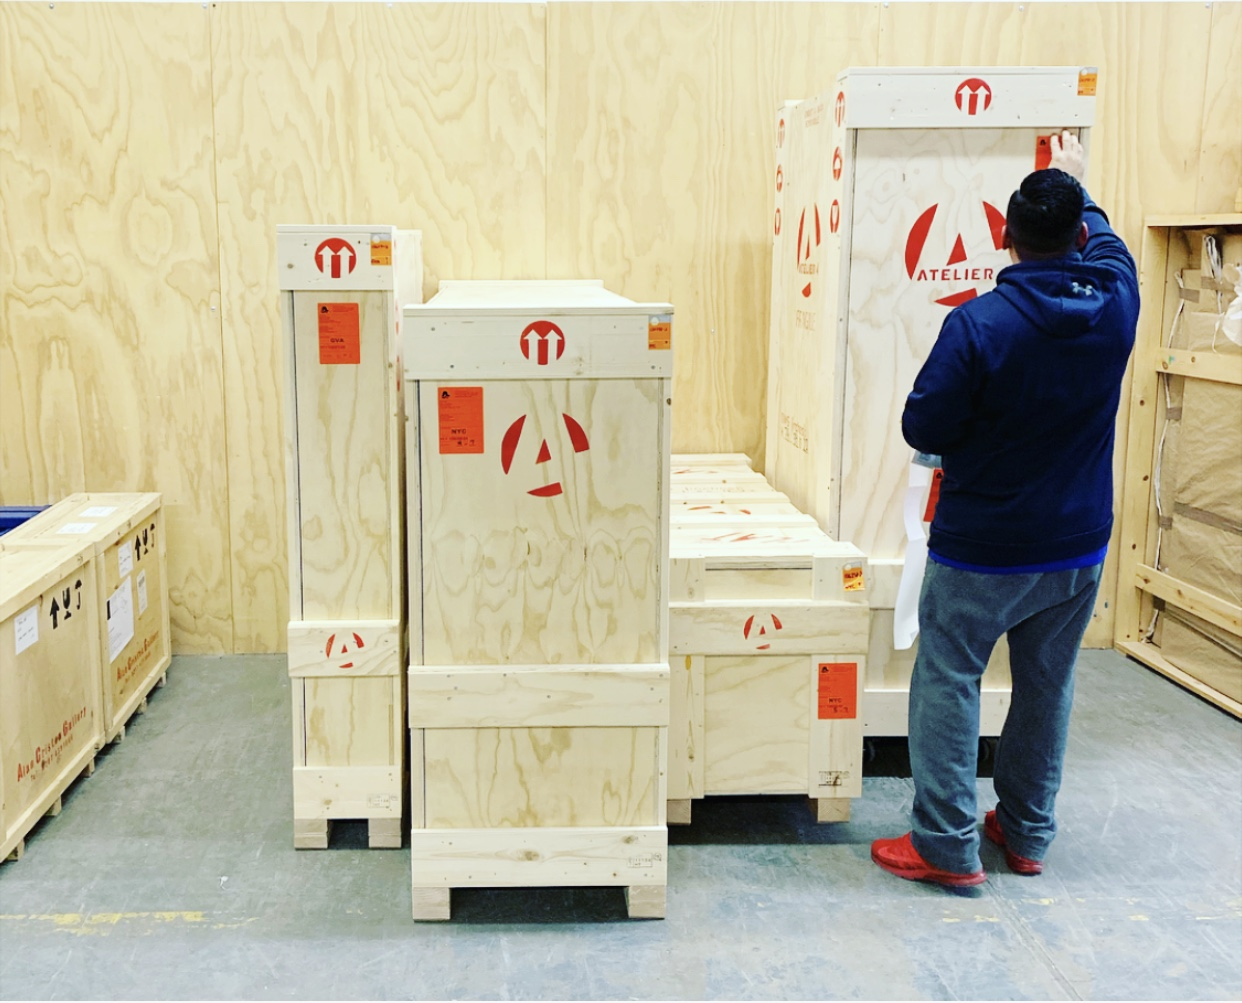 LoadingDock_Carlos&A4Crates